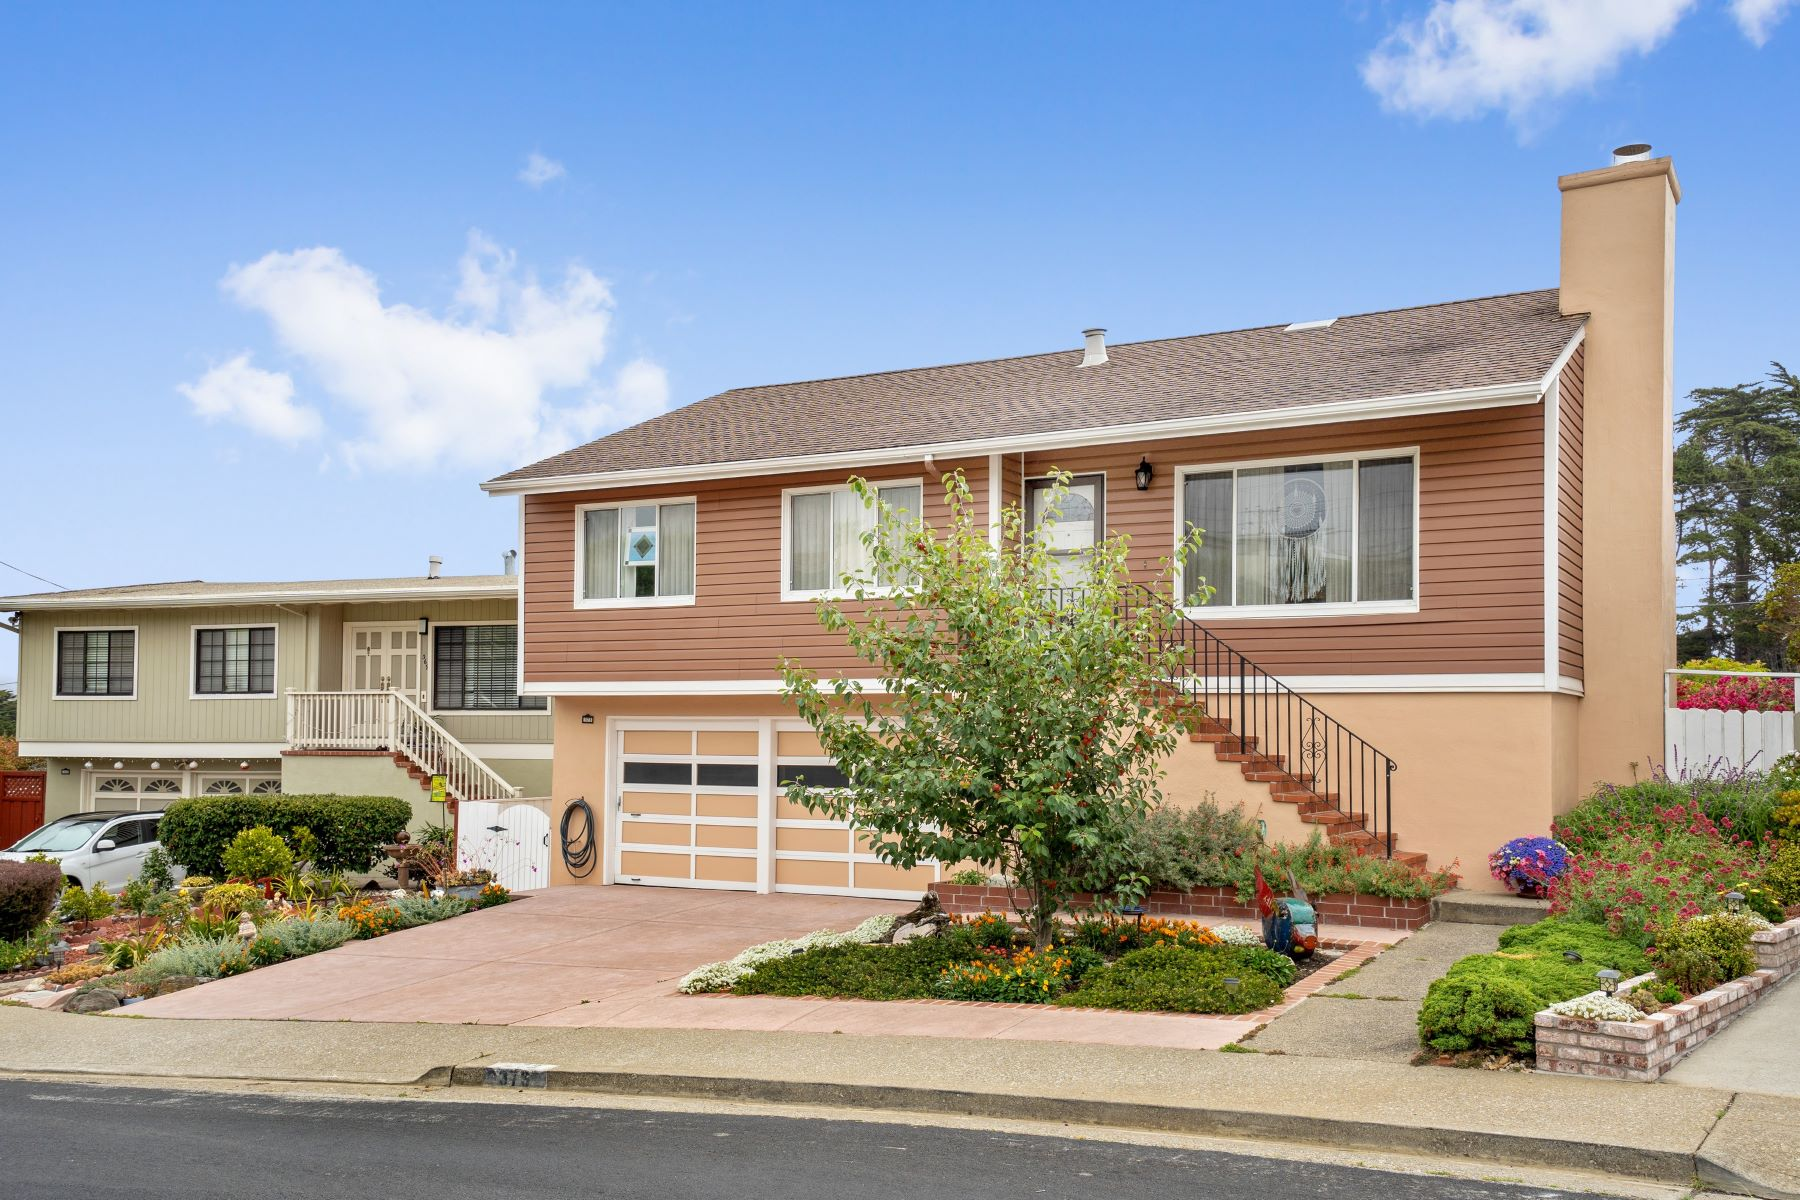 Single Family Homes for Active at Avalon Park Home 373 Zamora Drive South San Francisco, California 94080 United States